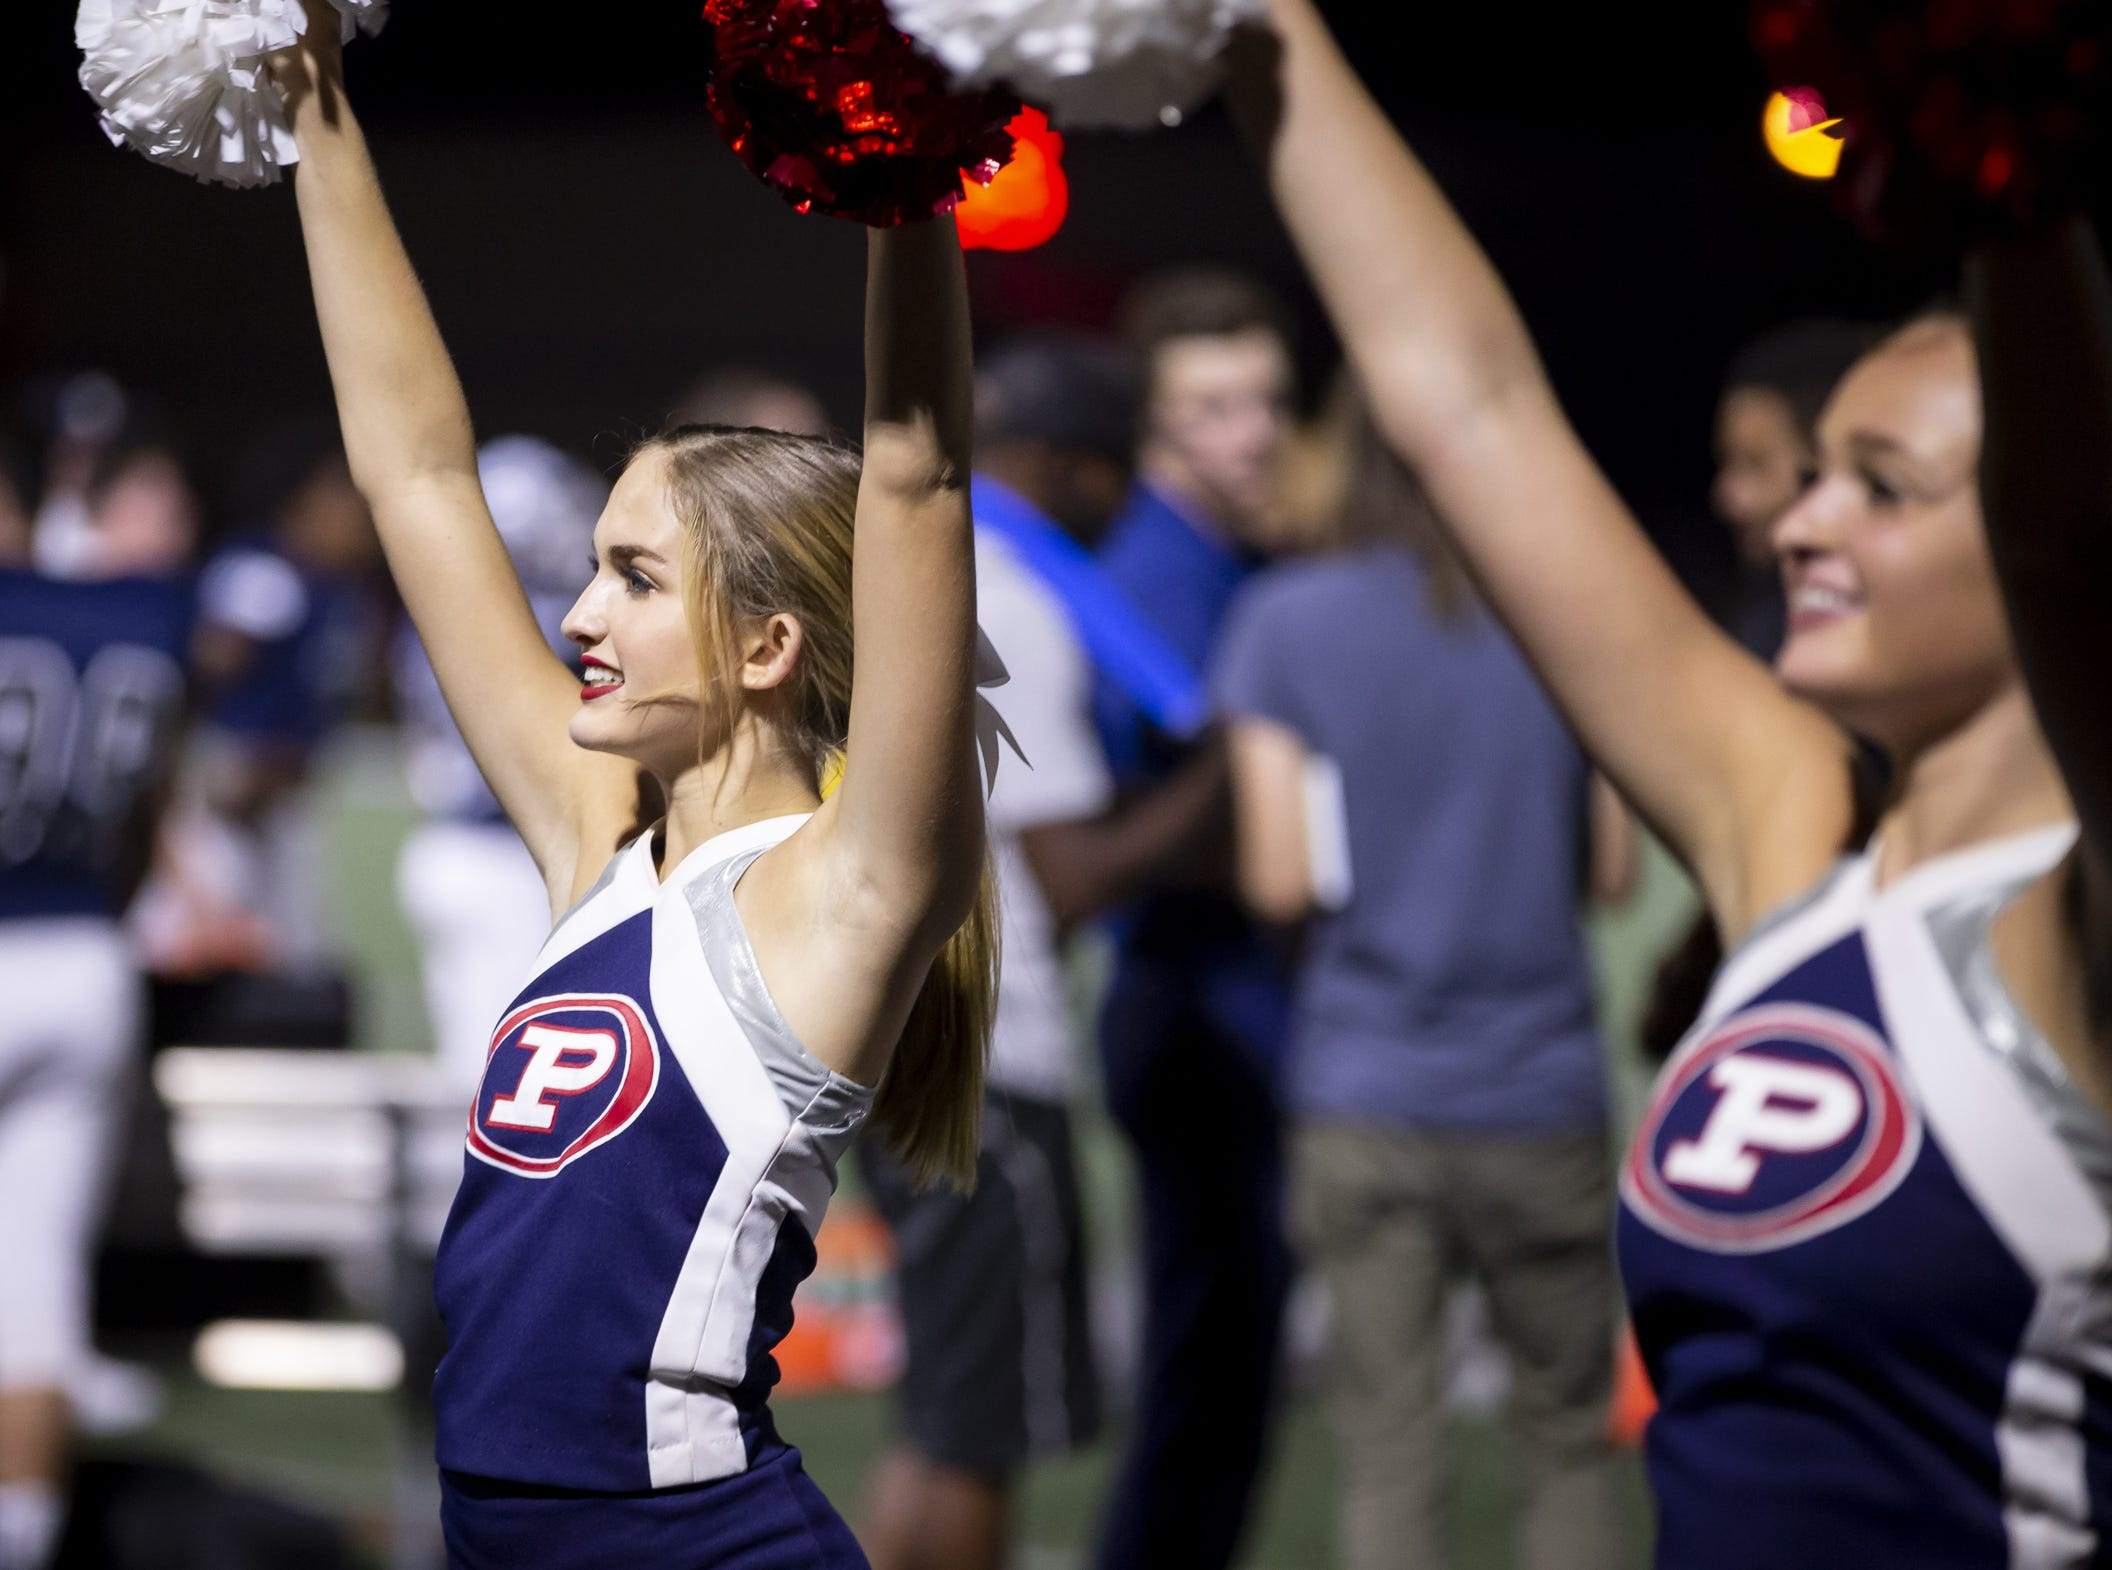 Pinnacle cheerleader Shaye Bergstrom cheers during the game against the Perry Pumas at Pinnacle High School on Friday, August 17, 2018 in Phoenix, Arizona.